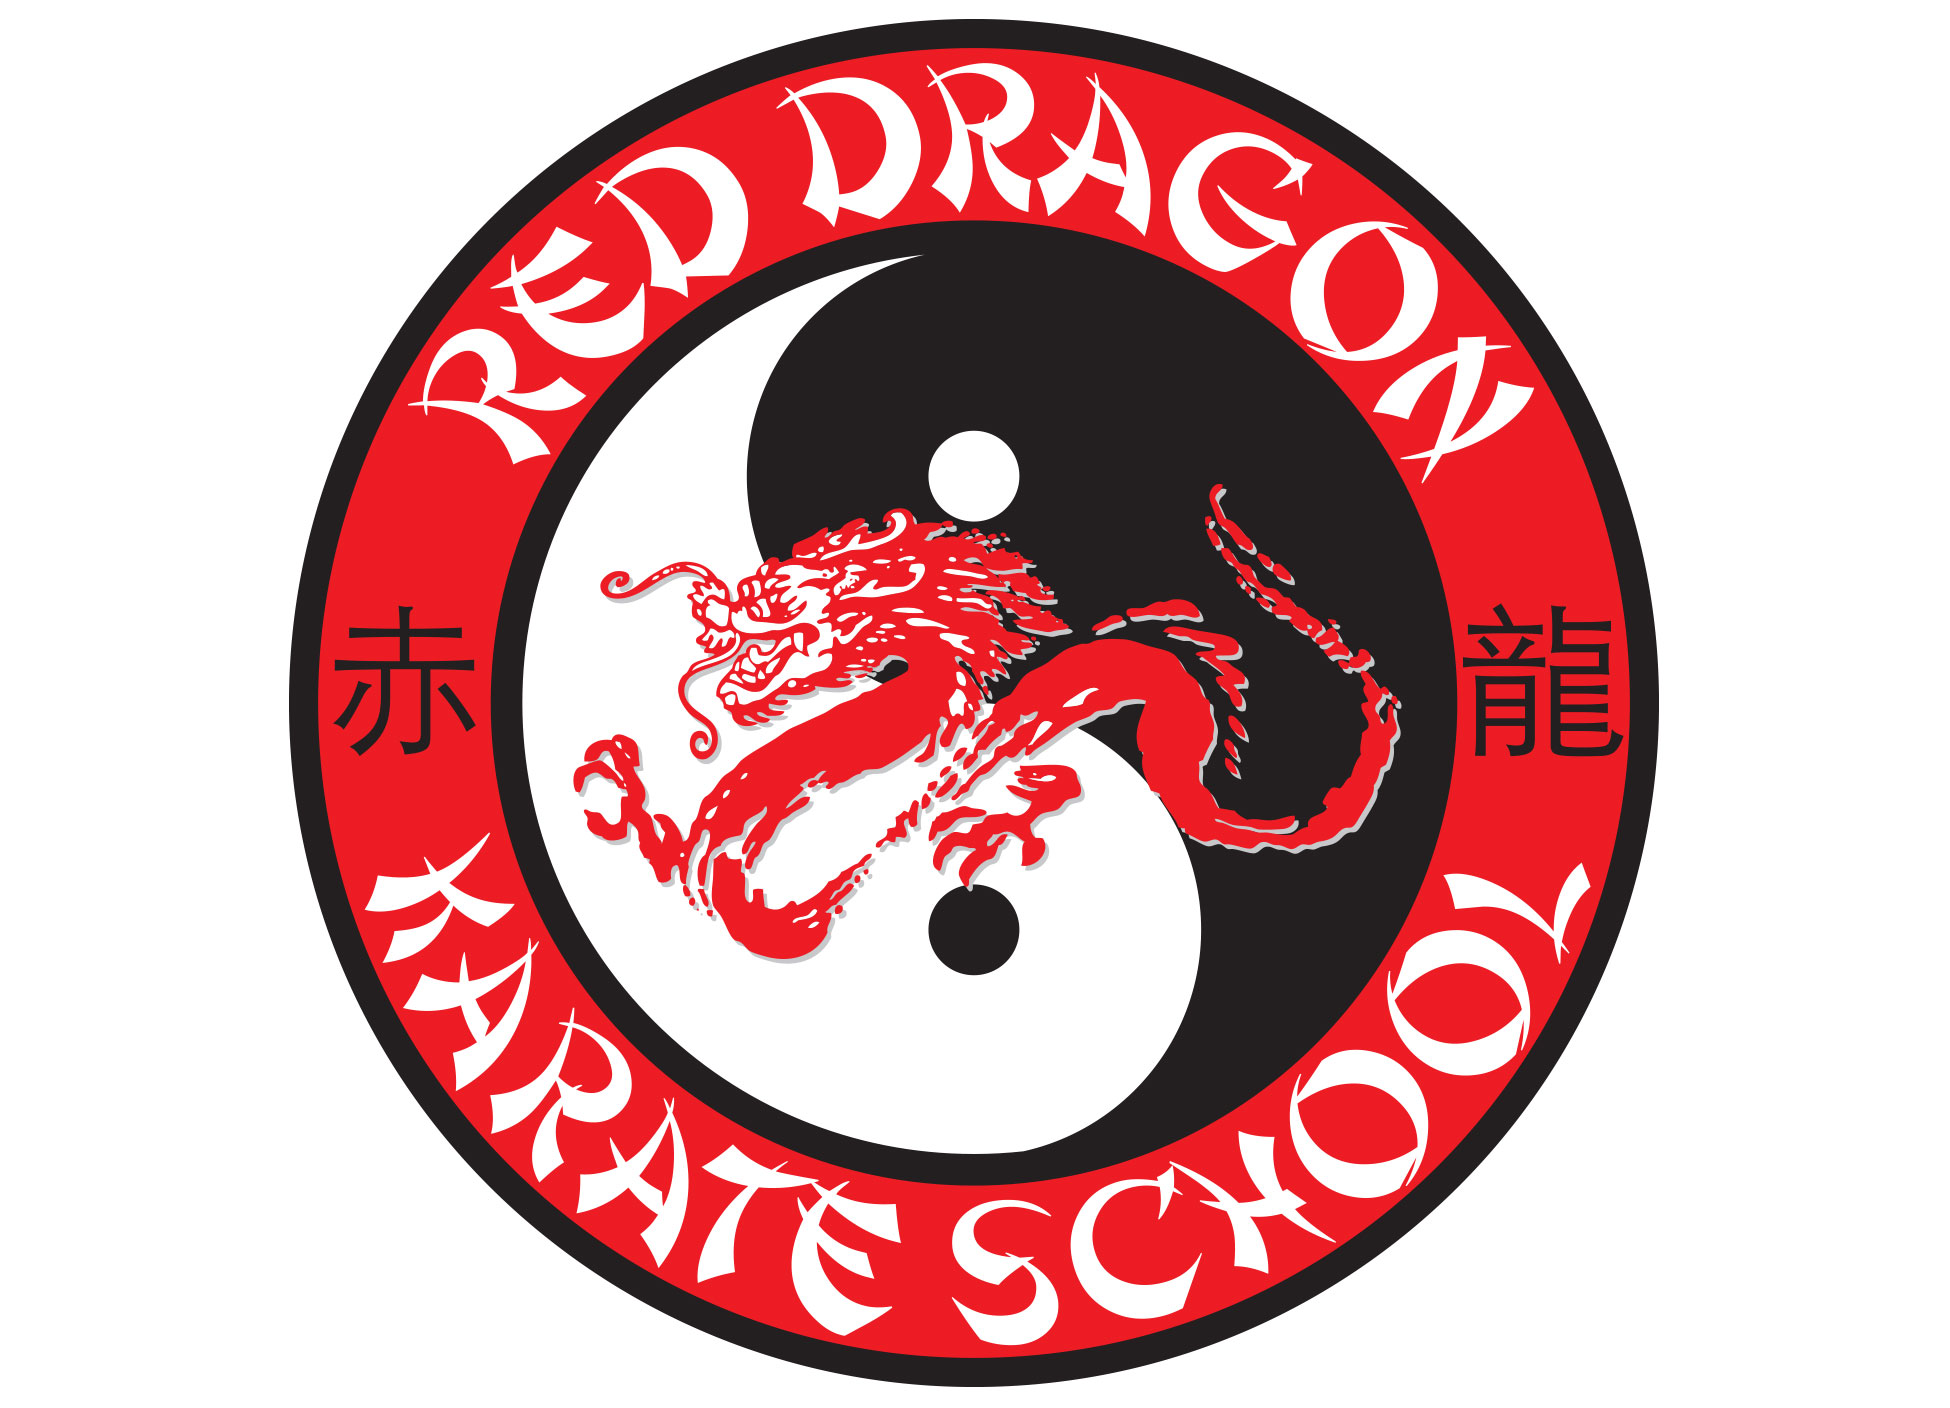 Image of Red Dragon Karate Logo designed and created by Joel Glastetter and Jeff Melander of Red Dragon Karate.